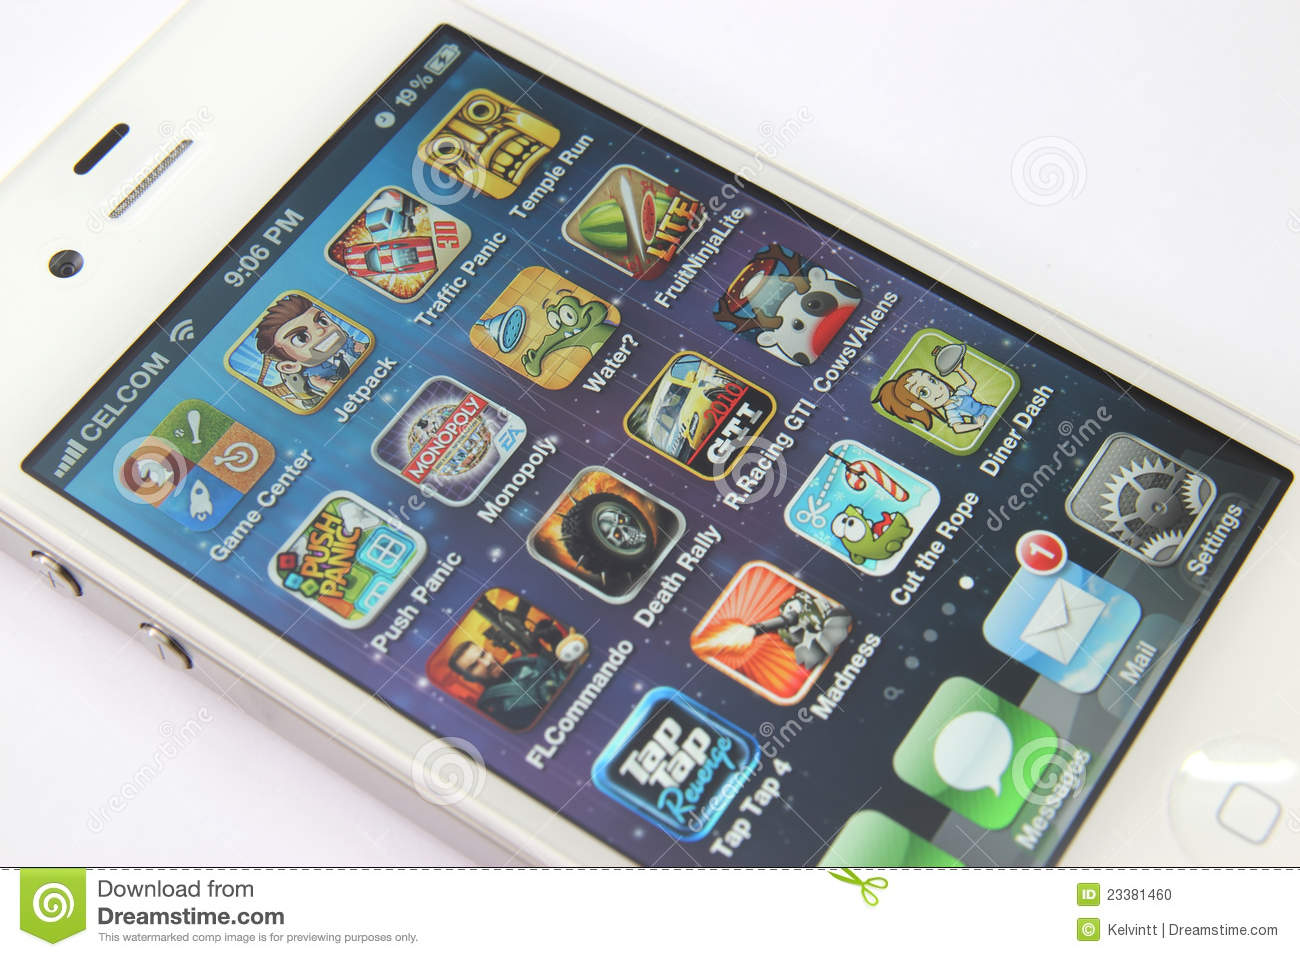 iphone game apps